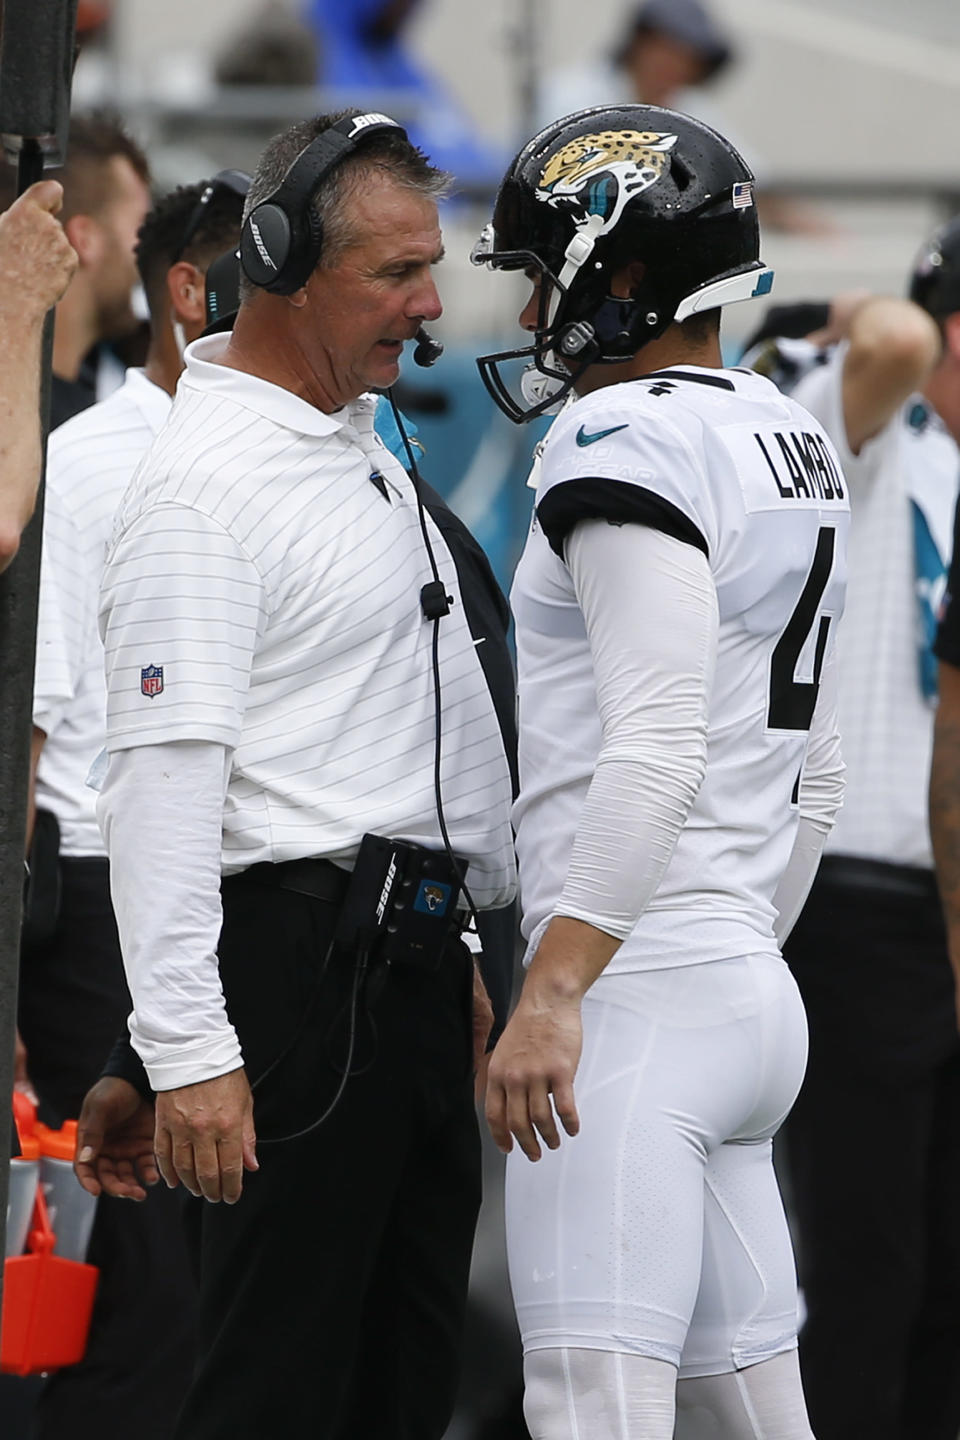 Jacksonville Jaguars head coach Urban Meyer, left, talks with place kicker Josh Lambo after Lambo missed his second field goal against the Denver Broncos during the first half of an NFL football game, Sunday, Sept. 19, 2021, in Jacksonville, Fla. (AP Photo/Stephen B. Morton)